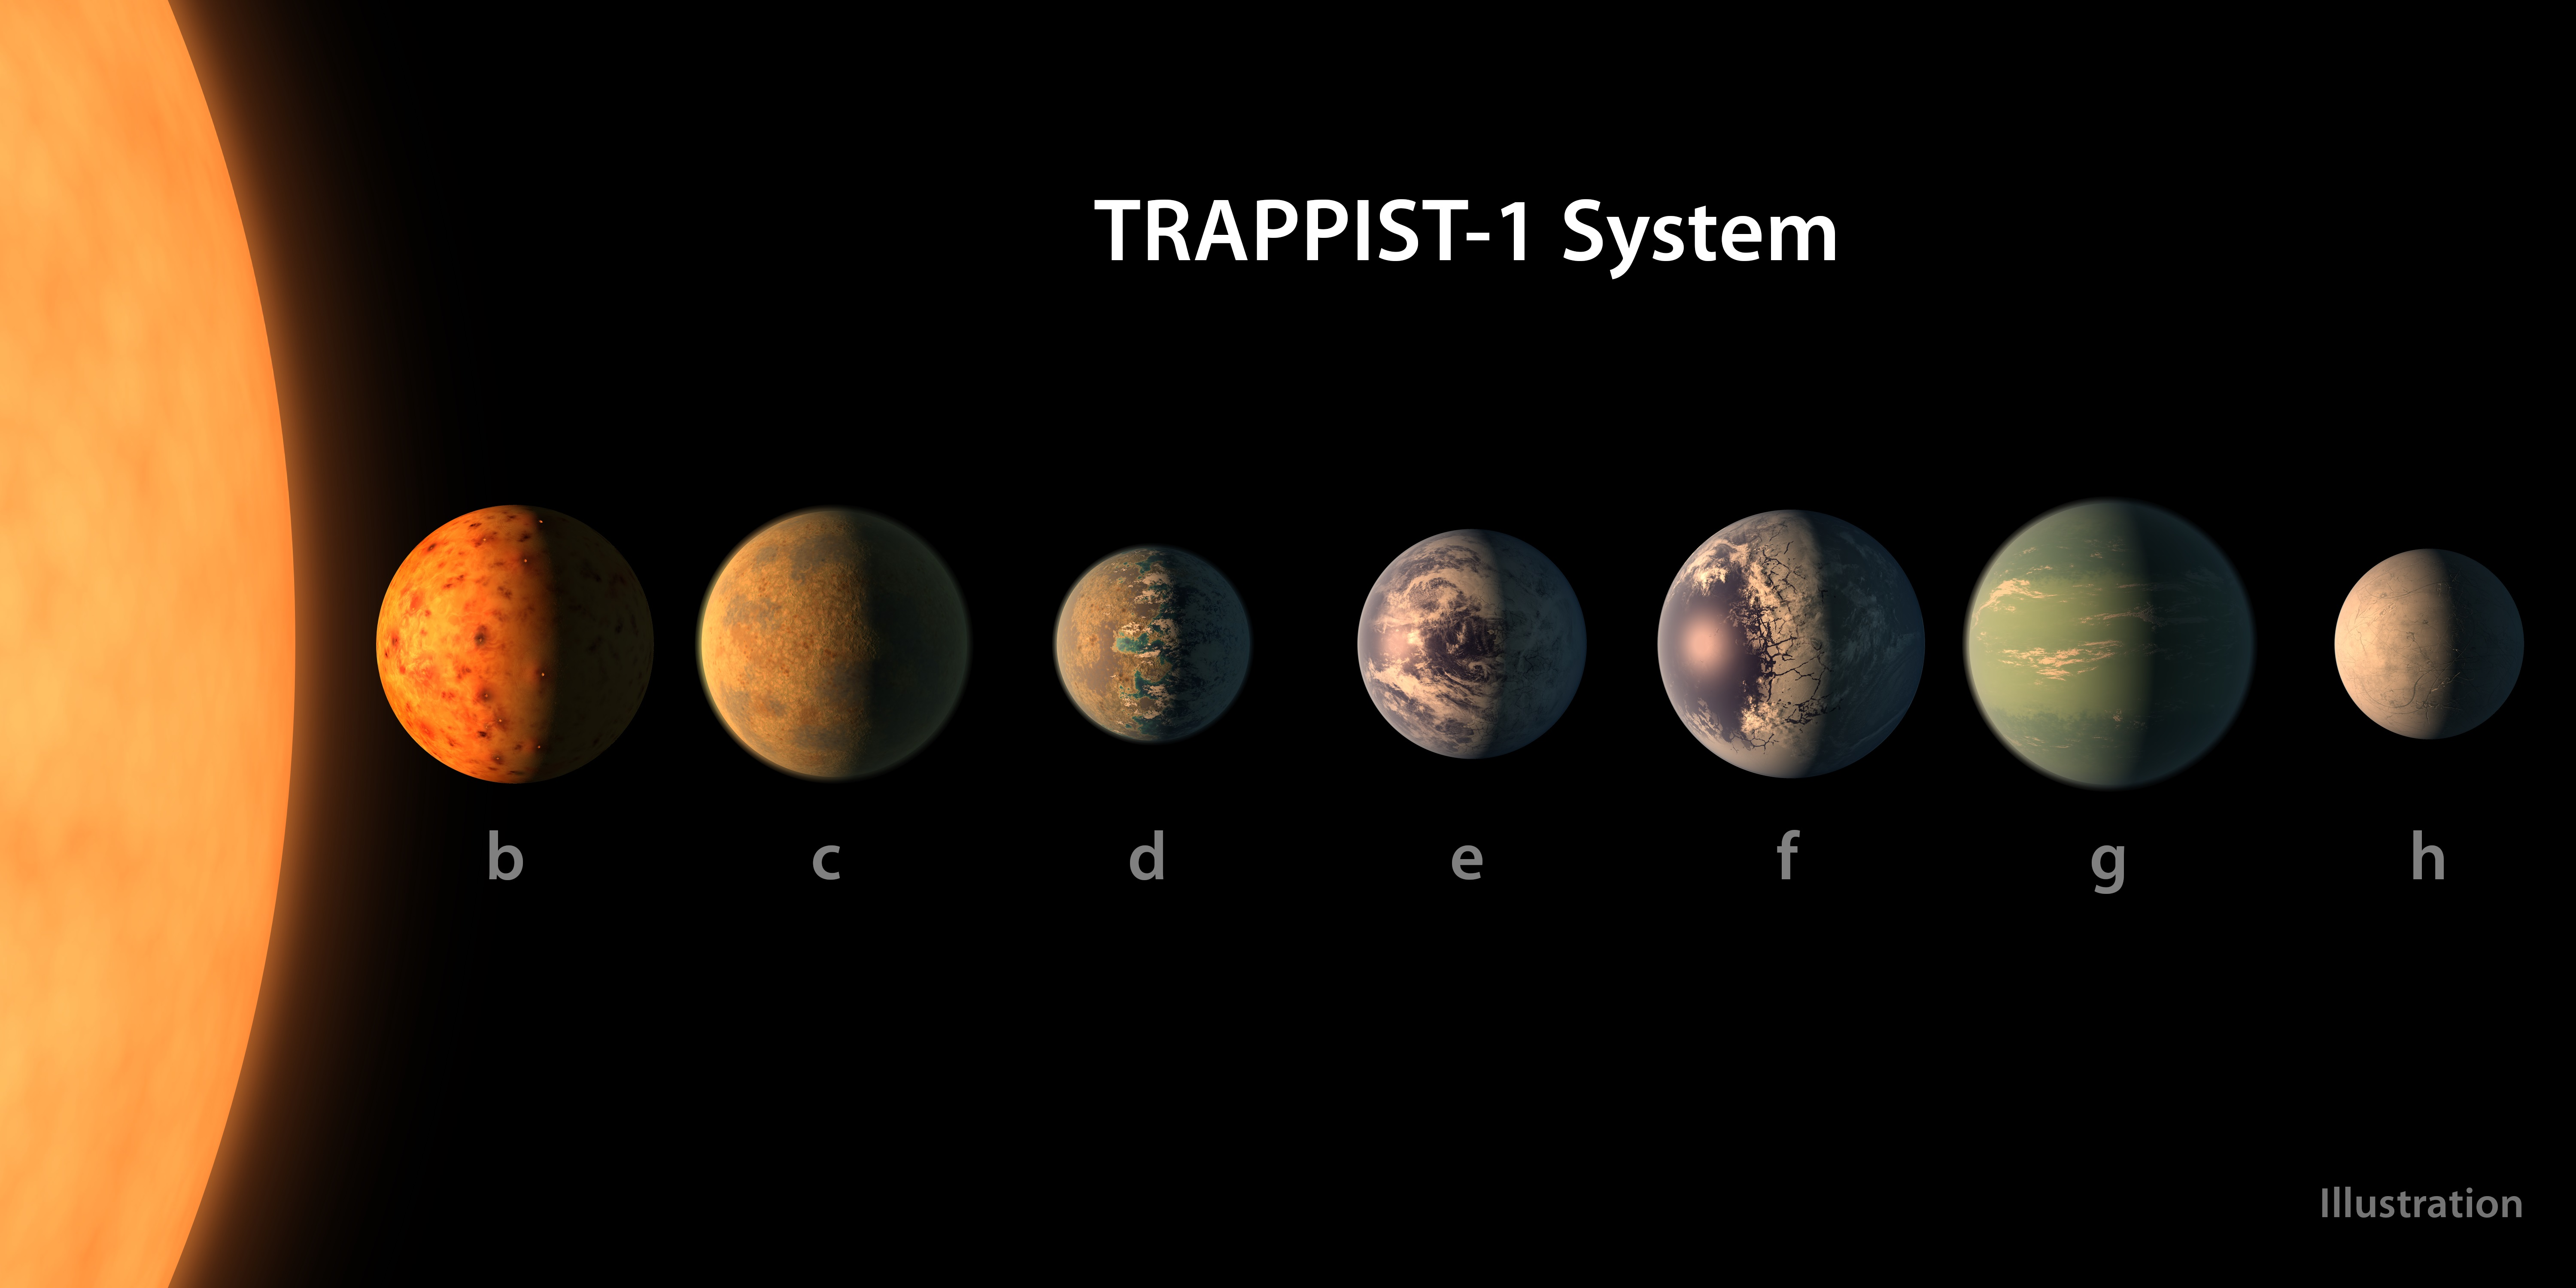 NASA Has Found Our 'Sister Solar System' With 3 Habitable ...